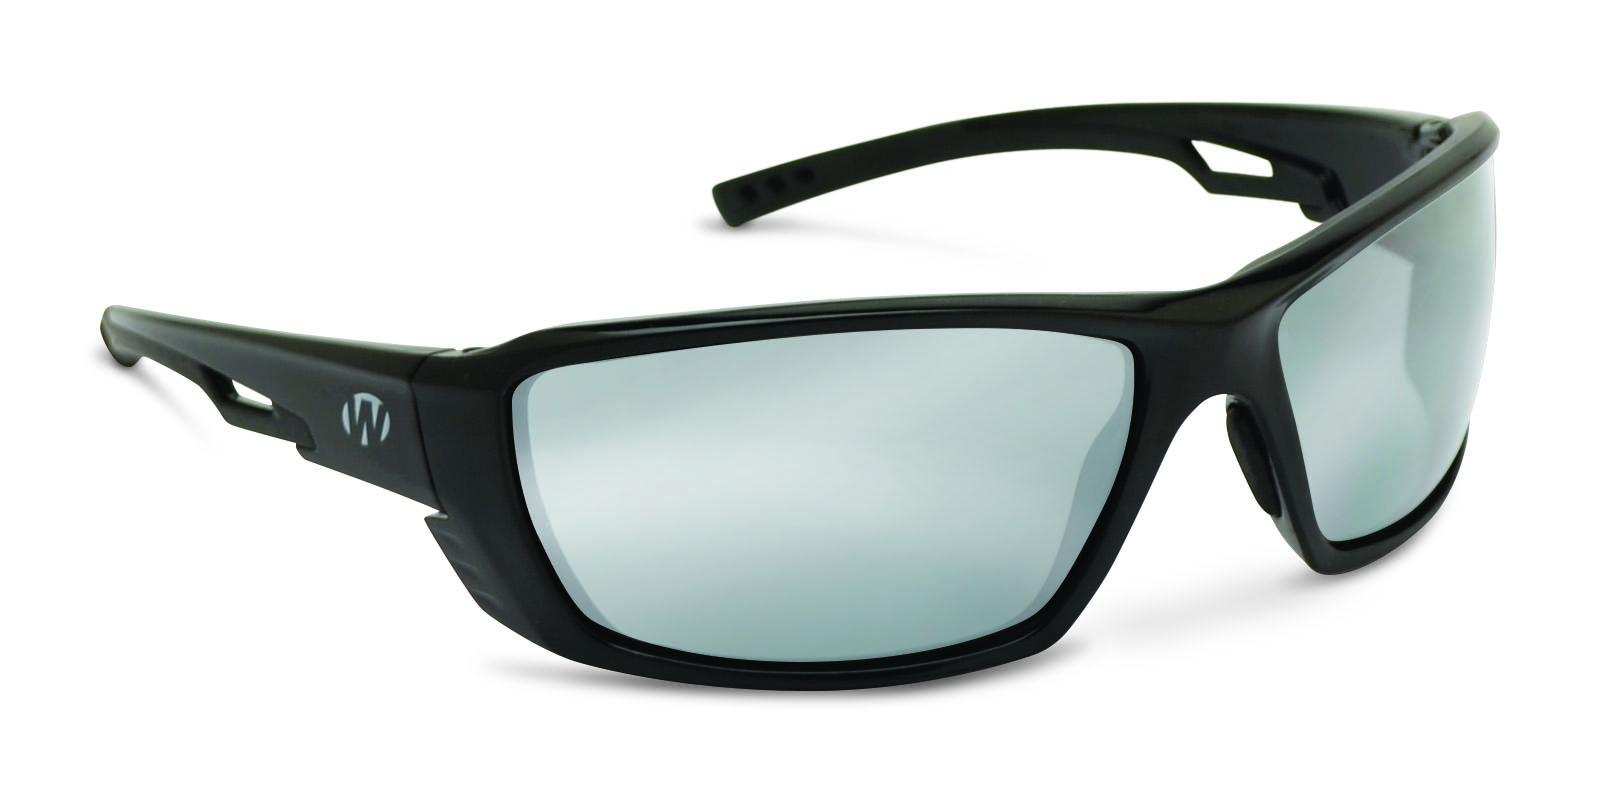 Walker's Polarized Safety Shooting Glasses